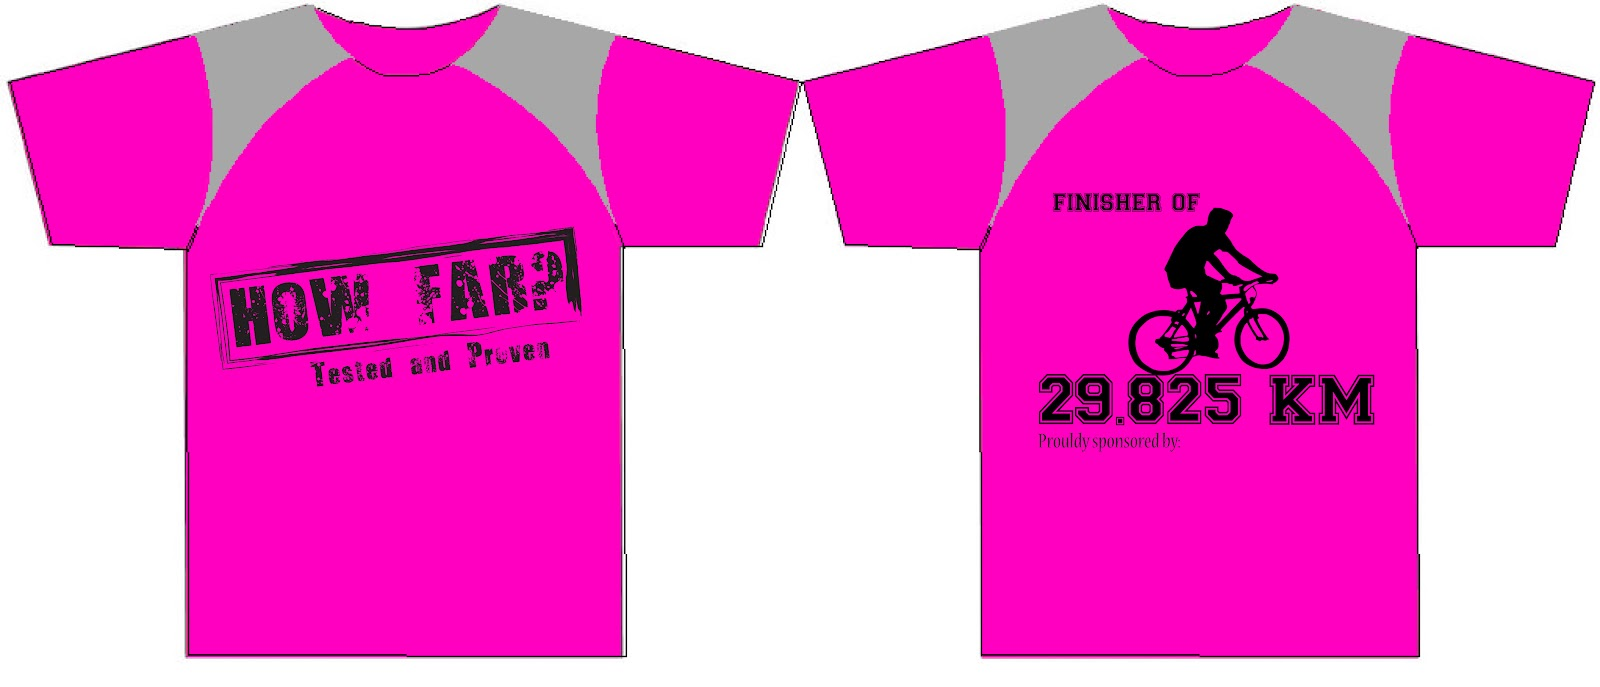 Scbe publicity blog scbe challenge tshirt for Pink t shirt template